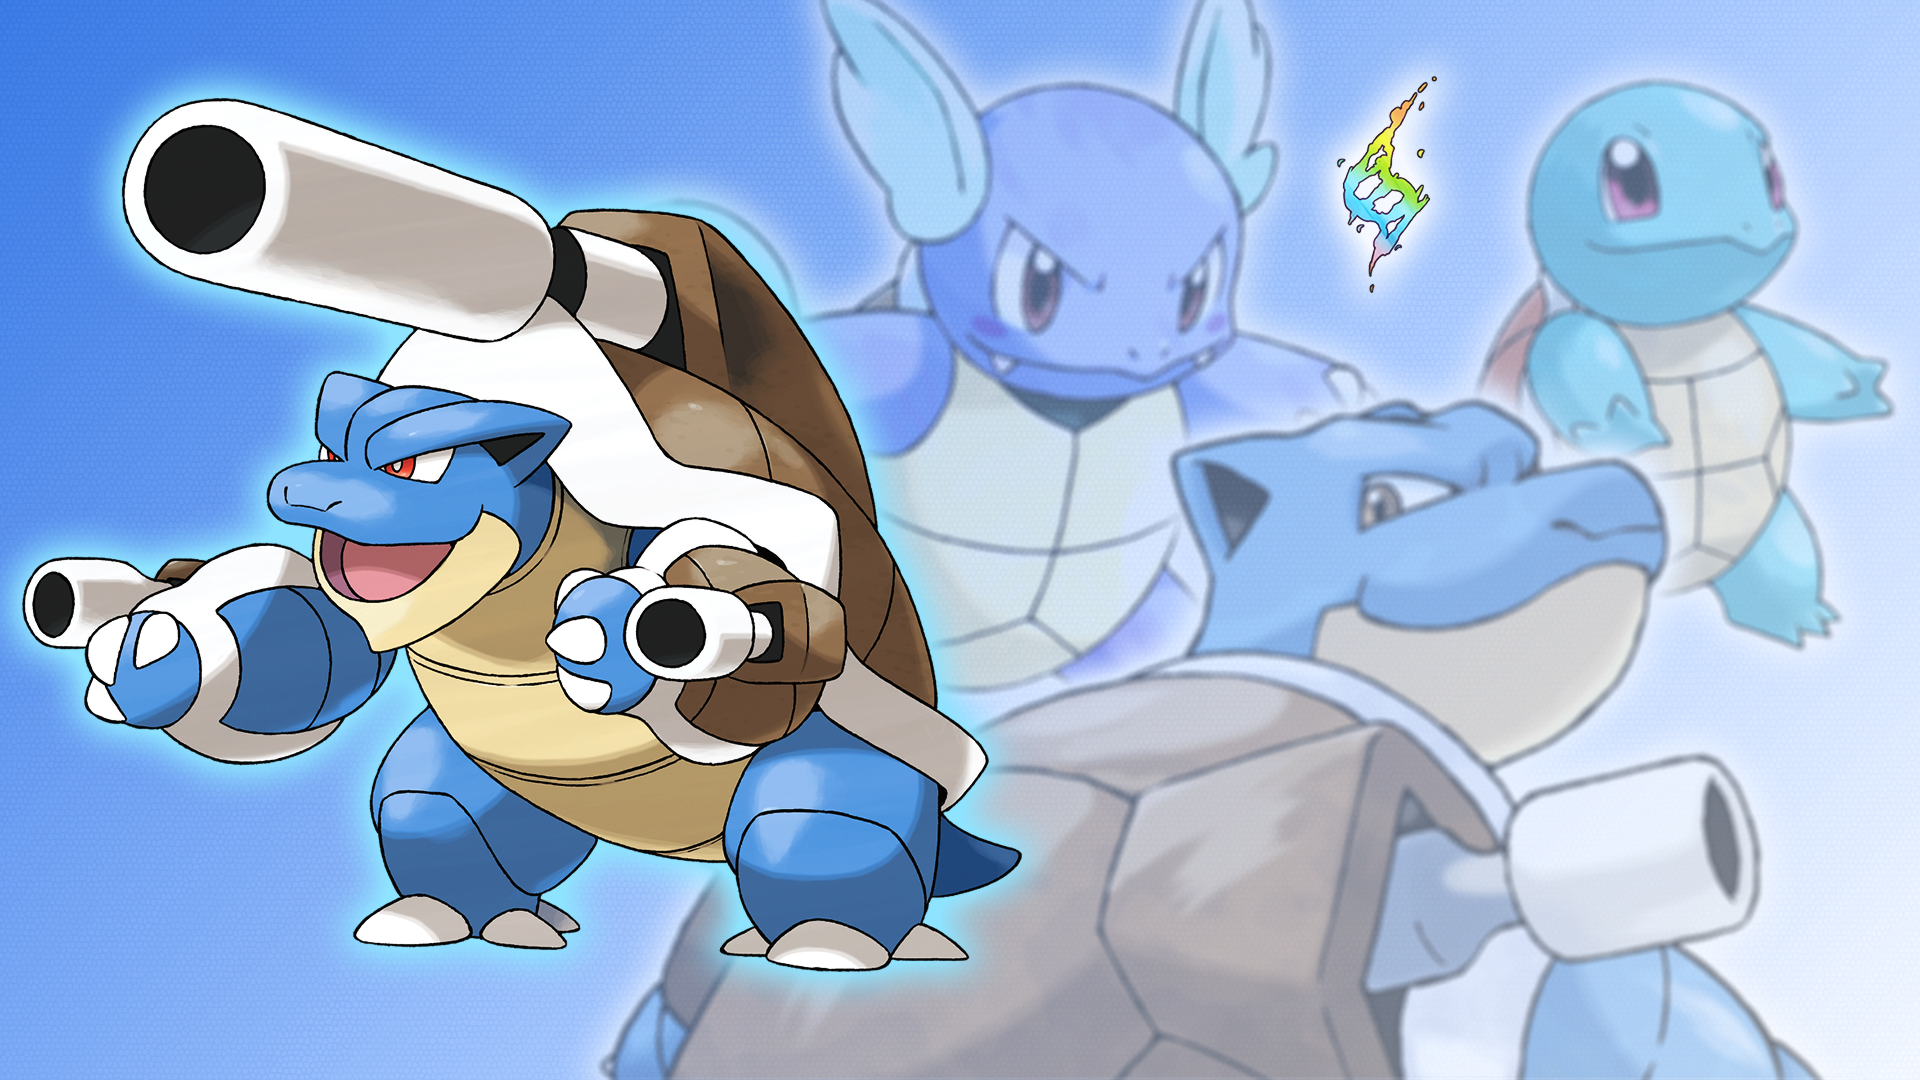 squirtle wartortle blastoise and mega wallpaper by